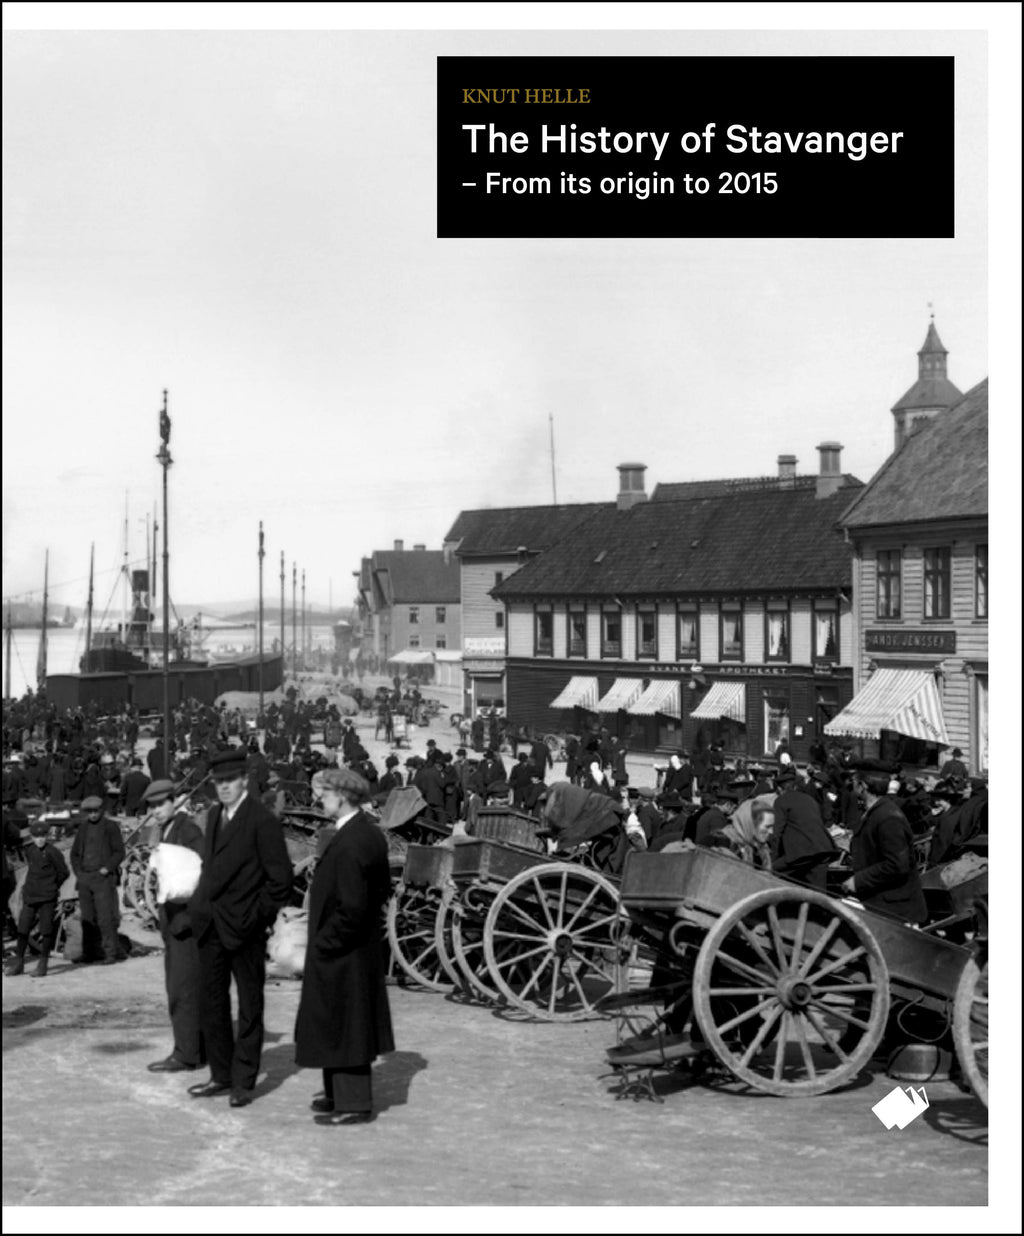 The history of Stavanger : a complete urban history